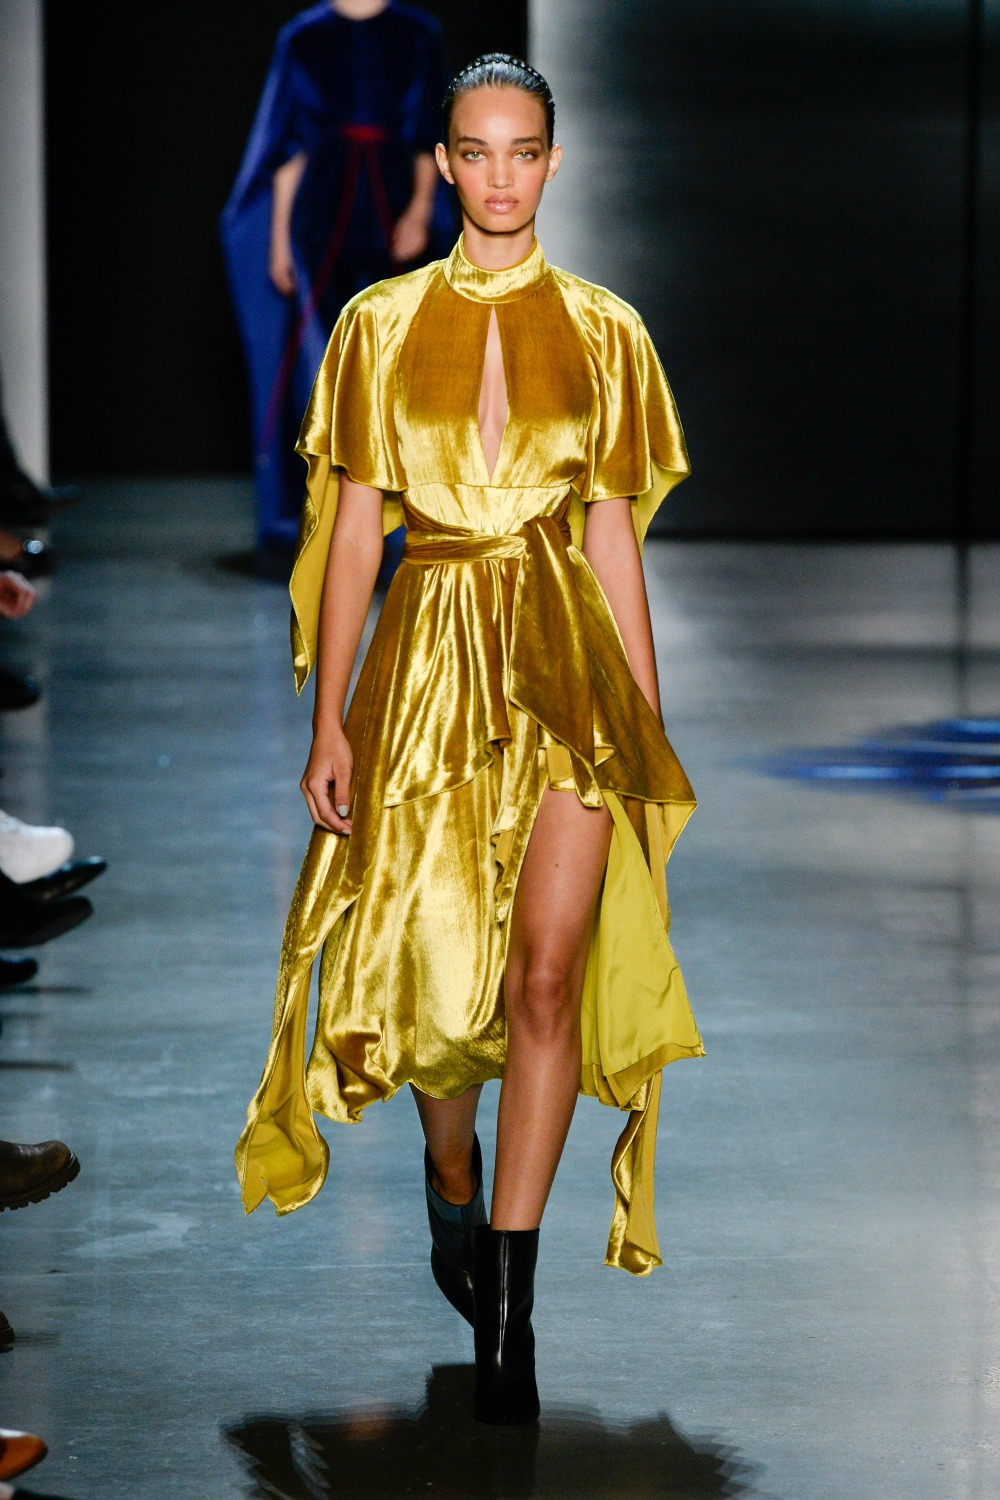 Yellow Fall Fashion Trend on the Prabal Gurung FW18 Runway at New York Fashion Week #FallFashion #FallTrends #Runway #FashionWeek #NYFW #FallStyle #FallTrends